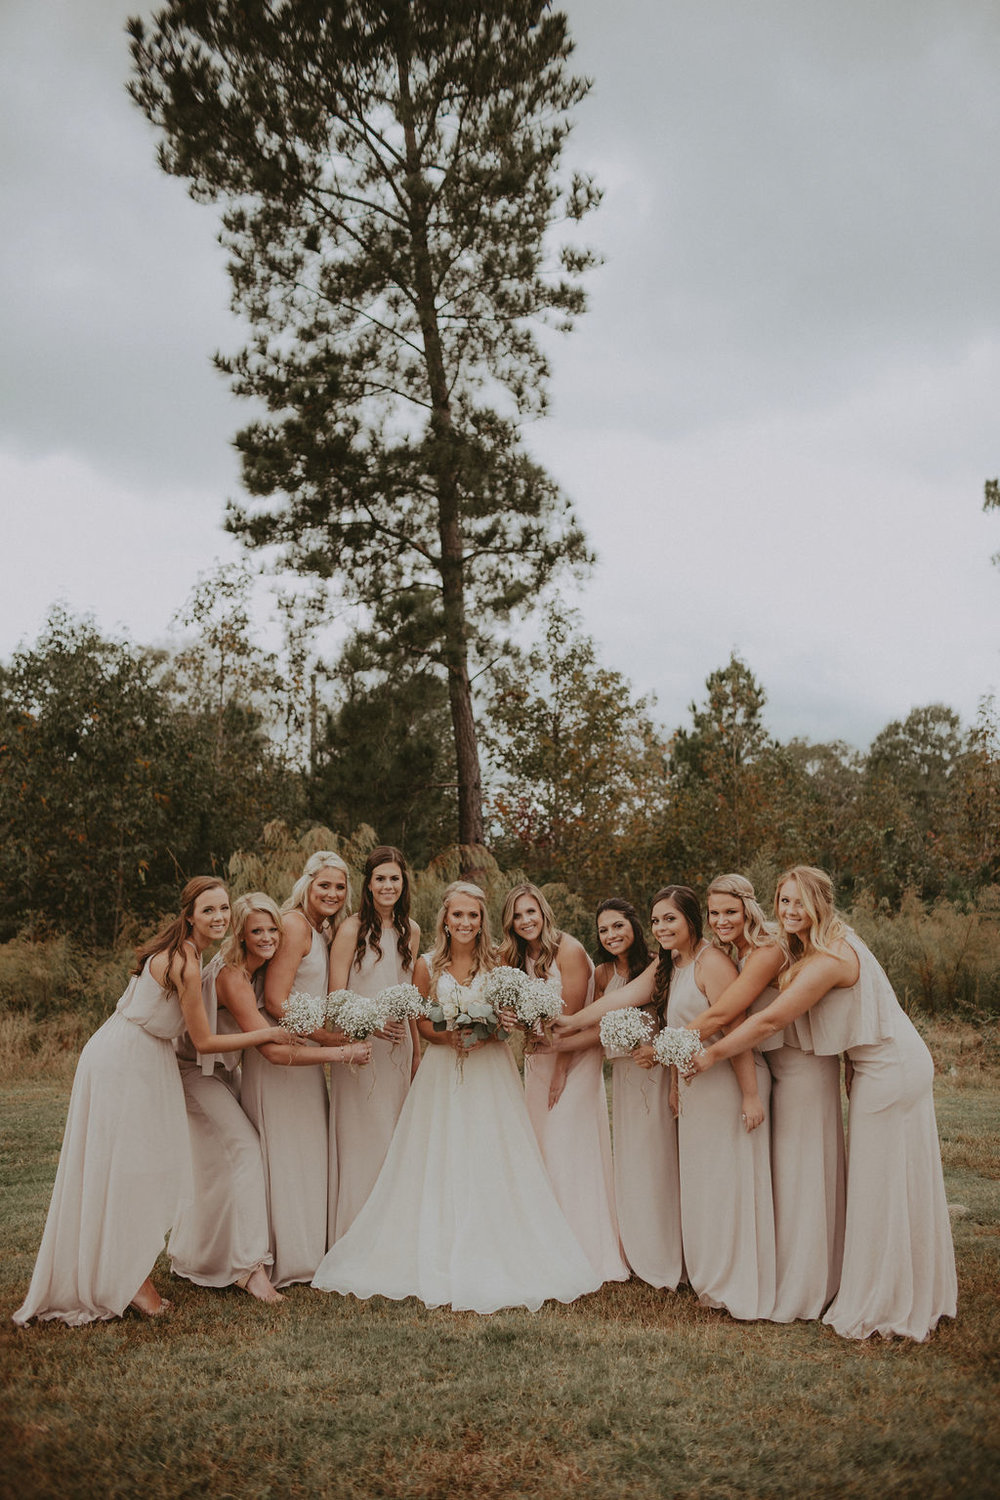 Wedding party neutral colors